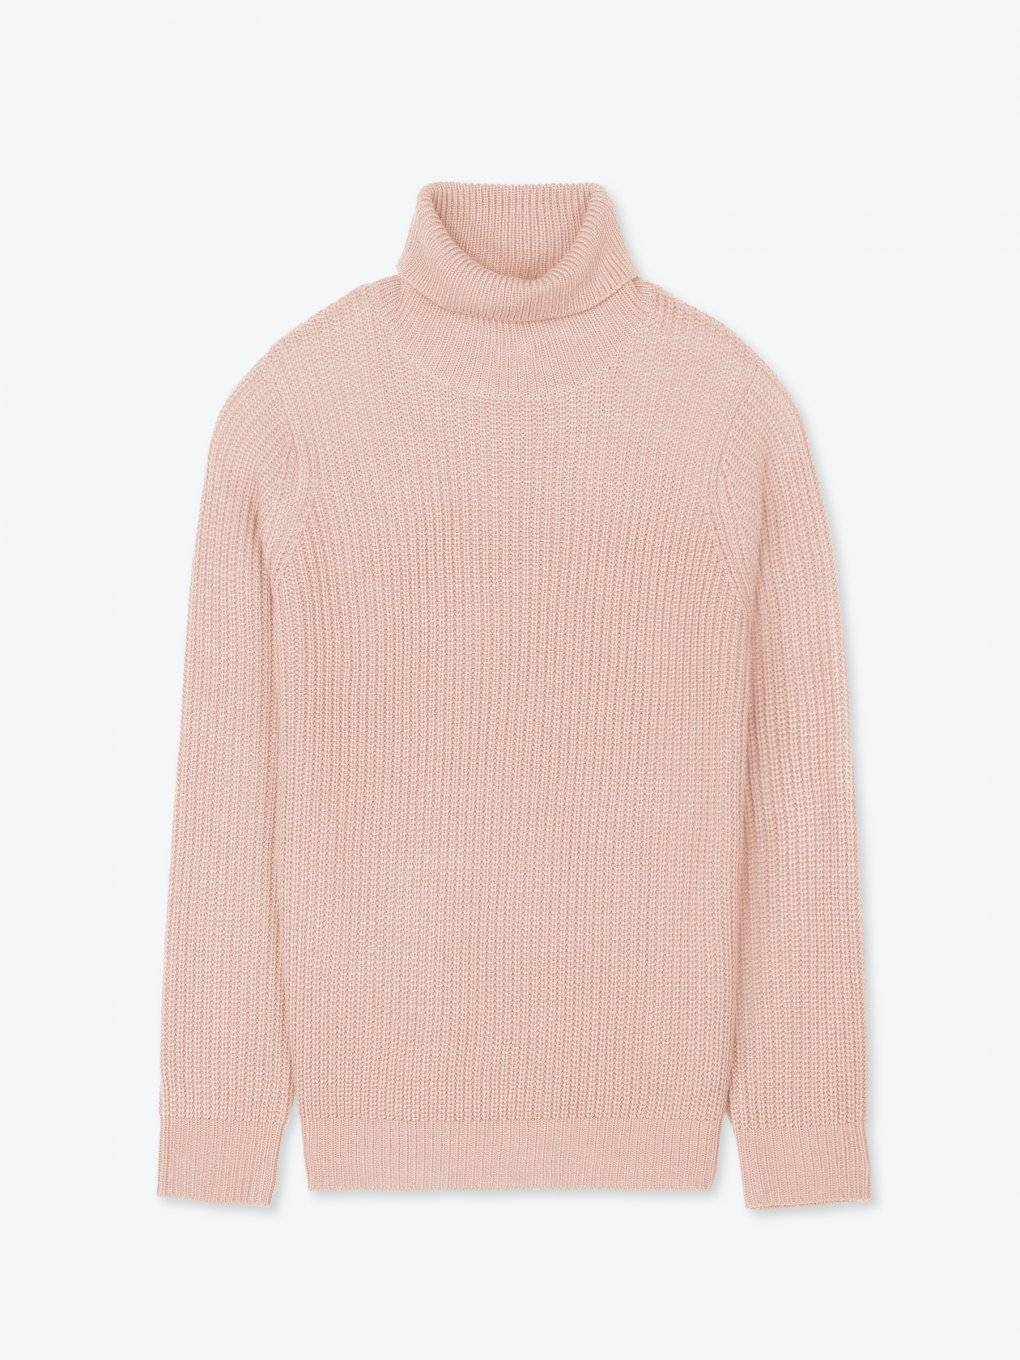 Rib-knit roll neck jumper